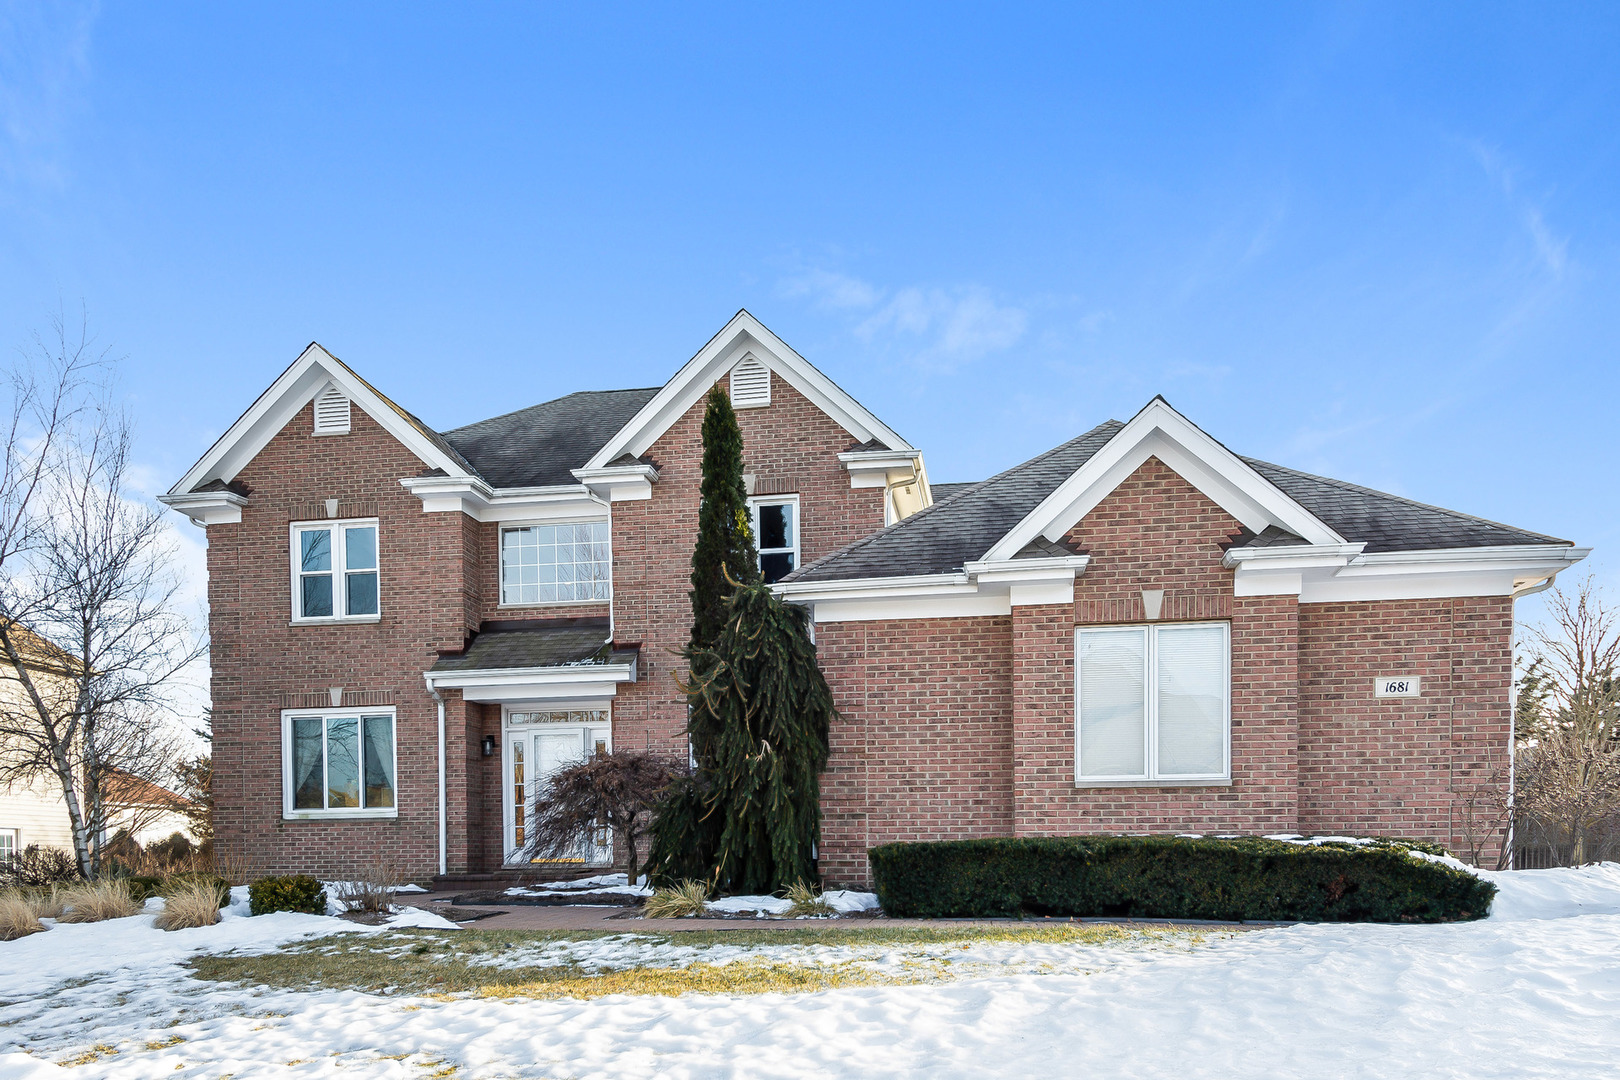 Photo for 1681 Stone Ridge Lane, Algonquin, IL 60102 (MLS # 10577003)